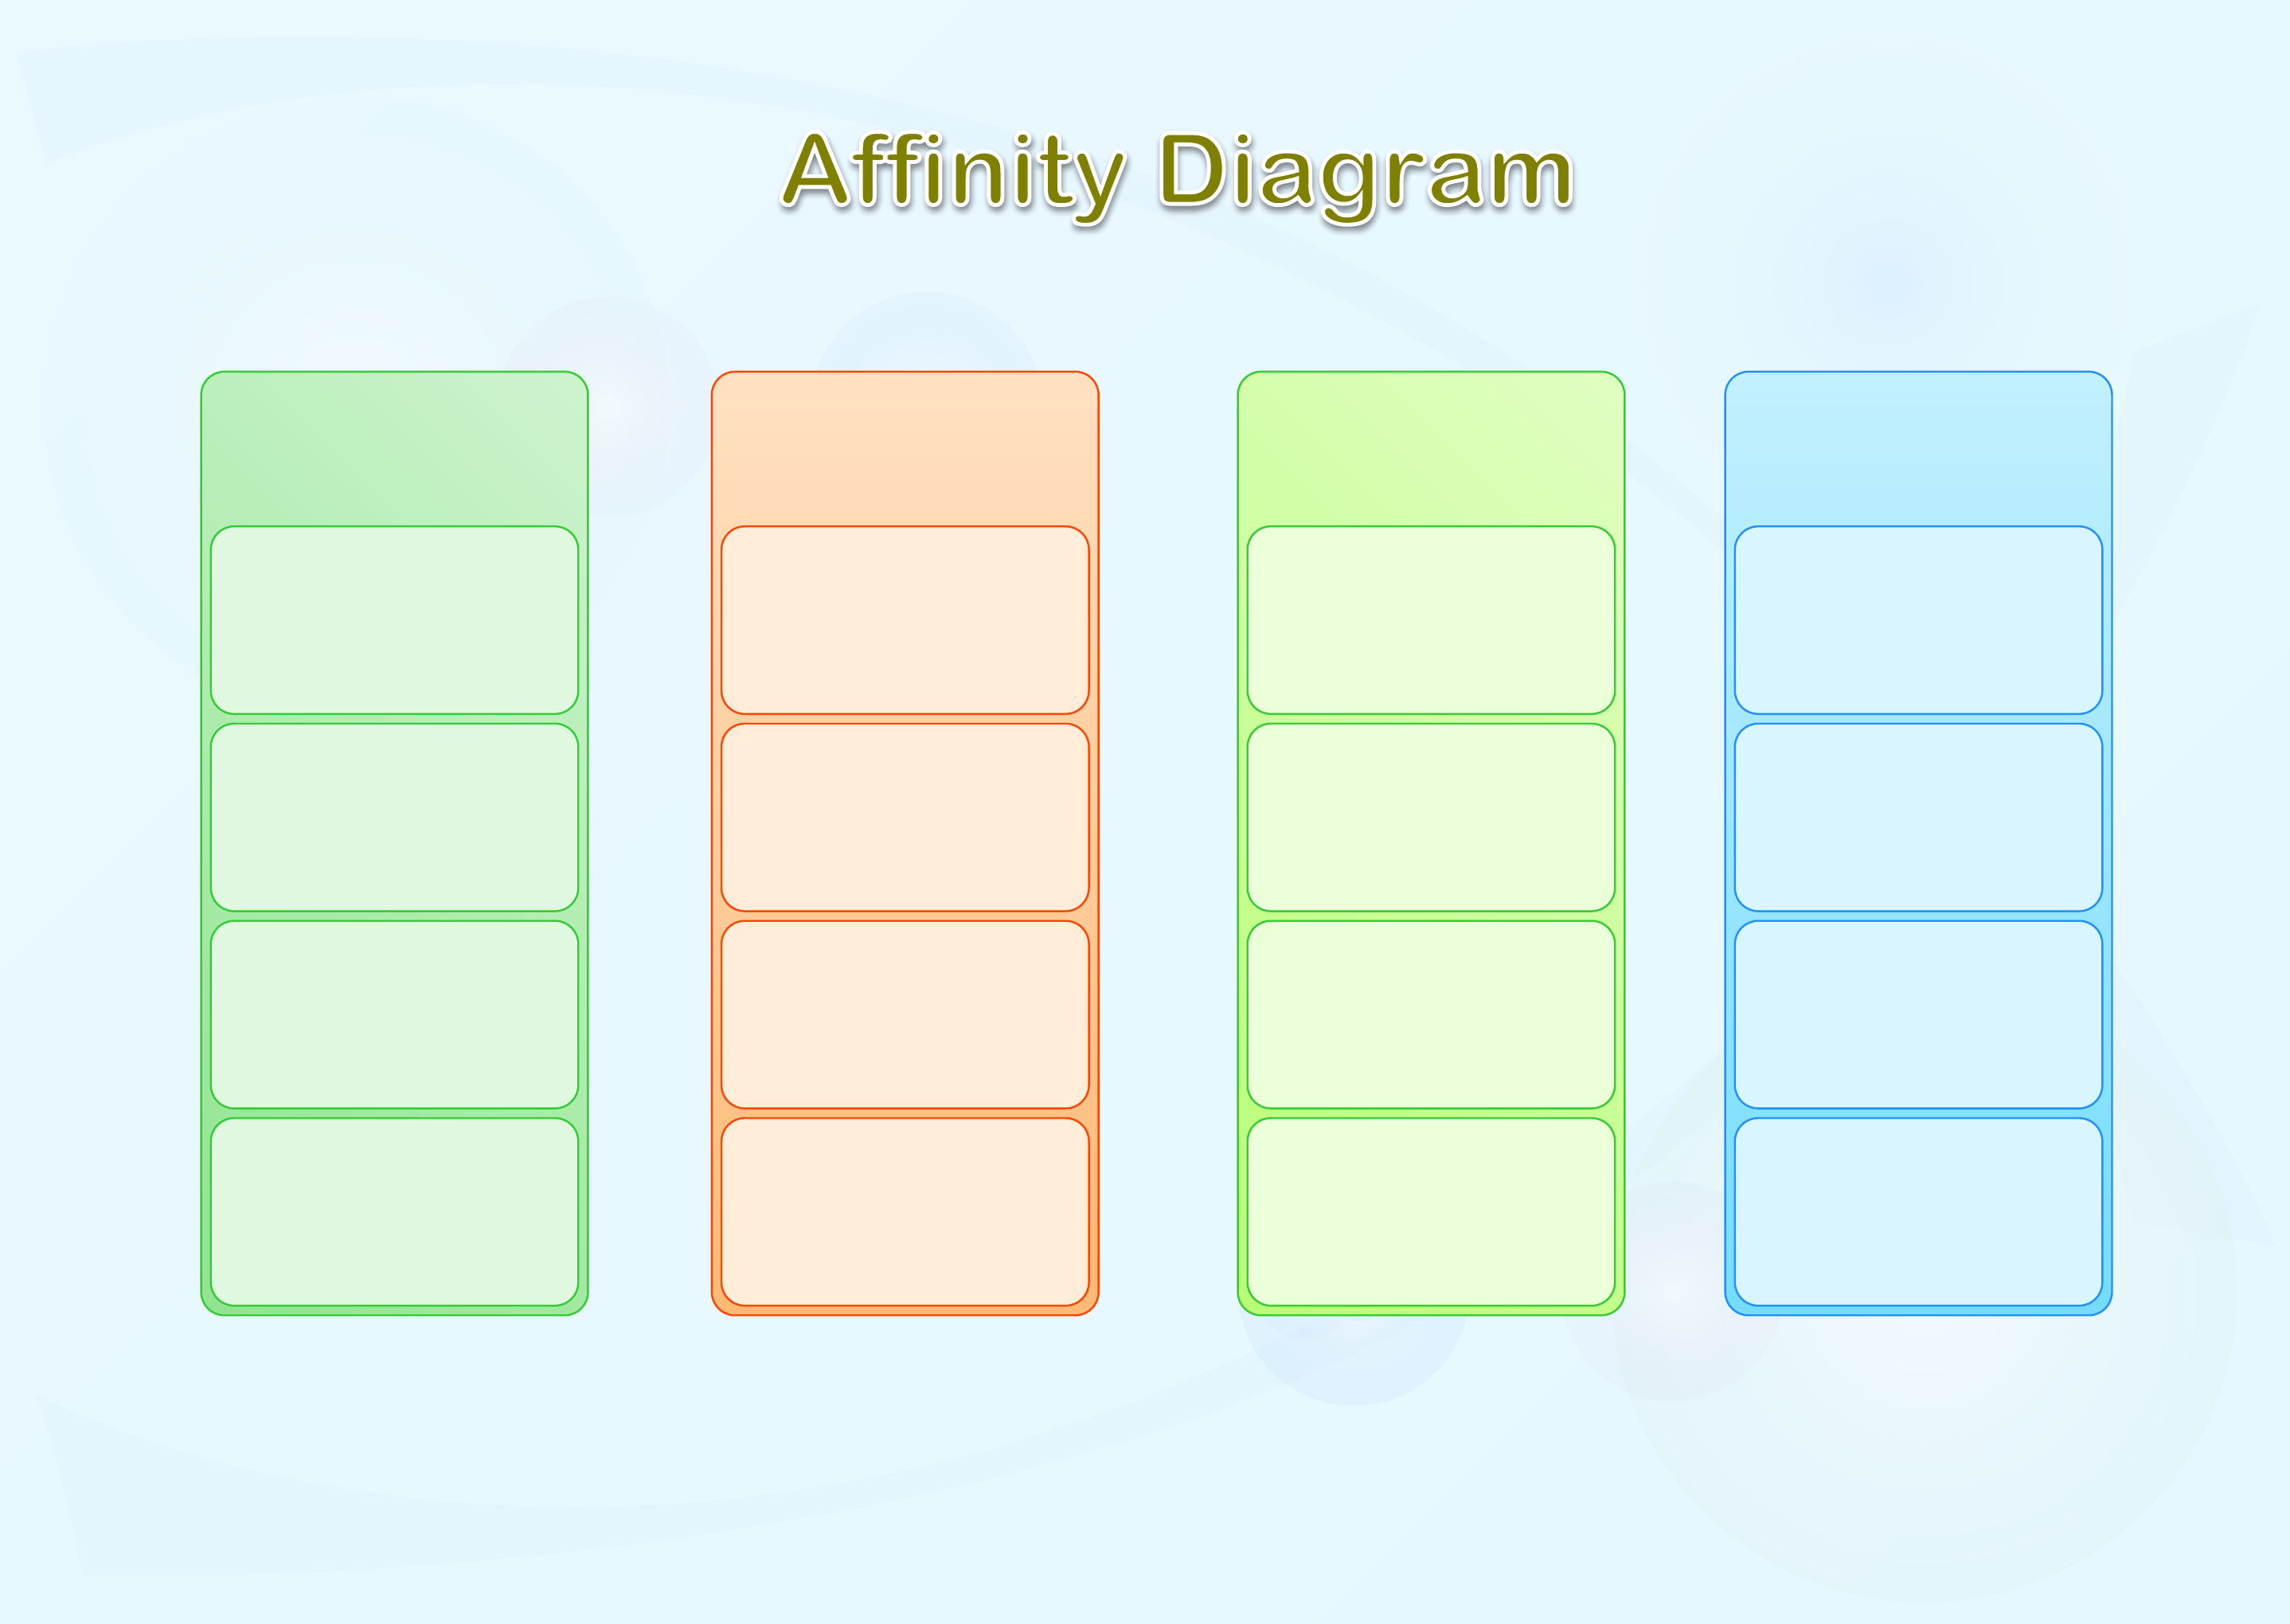 affinity diagram template form free download : affinity diagram template - findchart.co